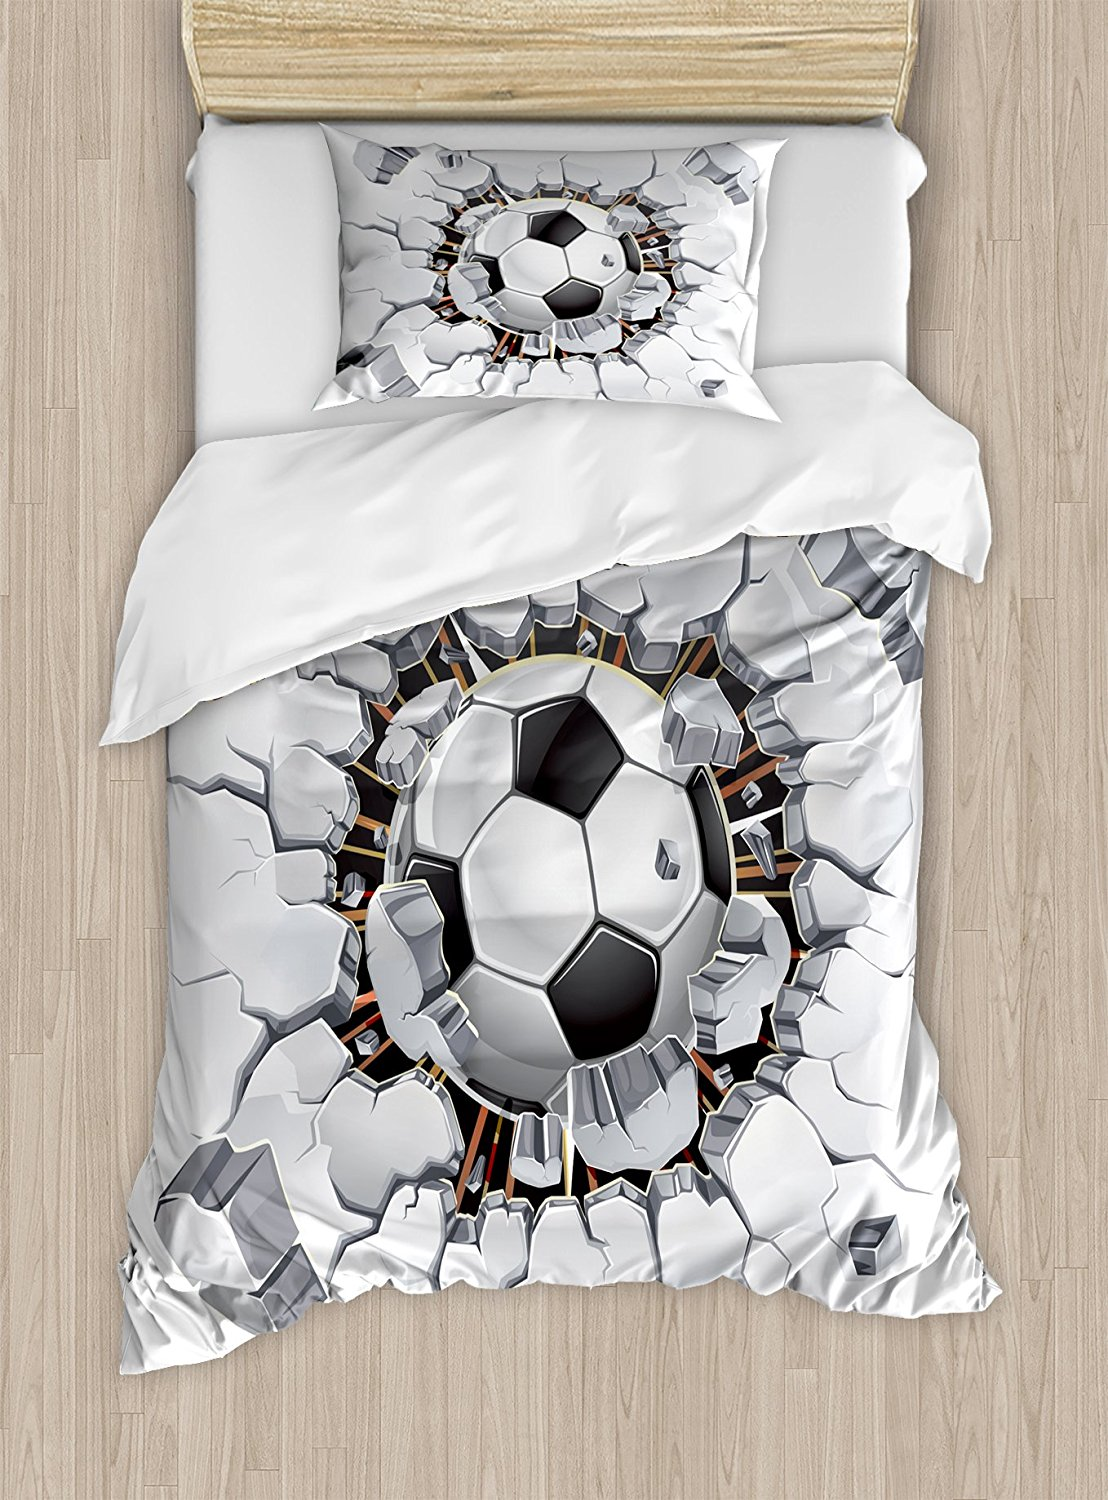 Sports Decor Duvet Cover Set Soccer Ball and Old Plaster Wall Damage Destruction Punching Illustration4 Piece Bedding Set